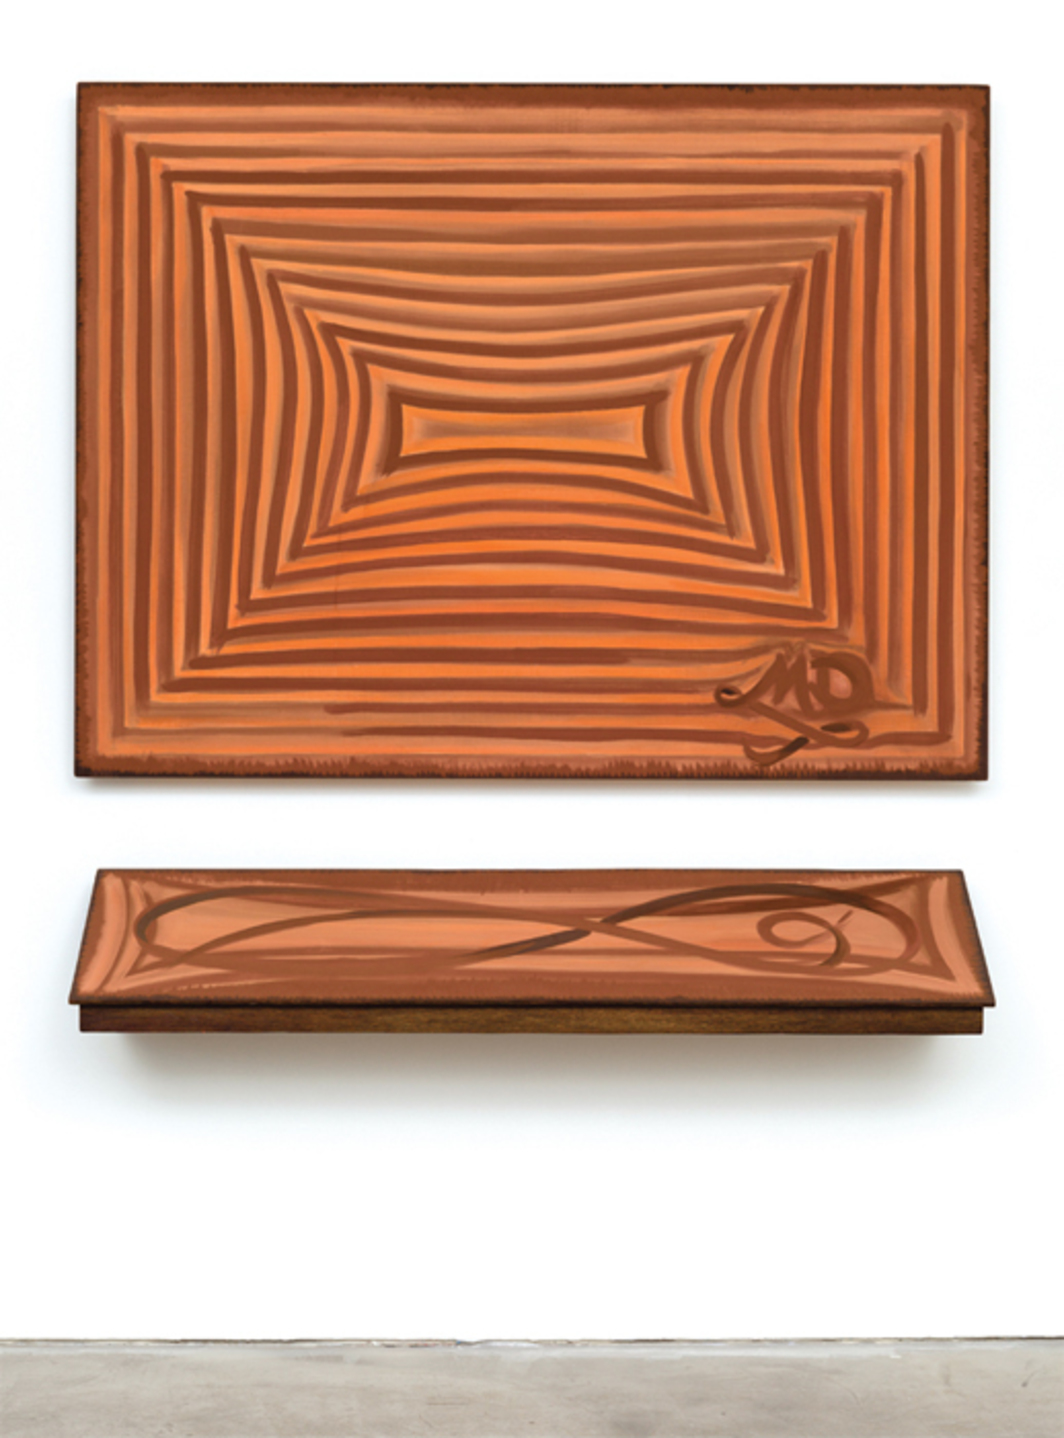 "Moira Dryer, The Signature Painting, 1987, casein on wood; top: 48 x 63"", bottom: 10 x 60""."